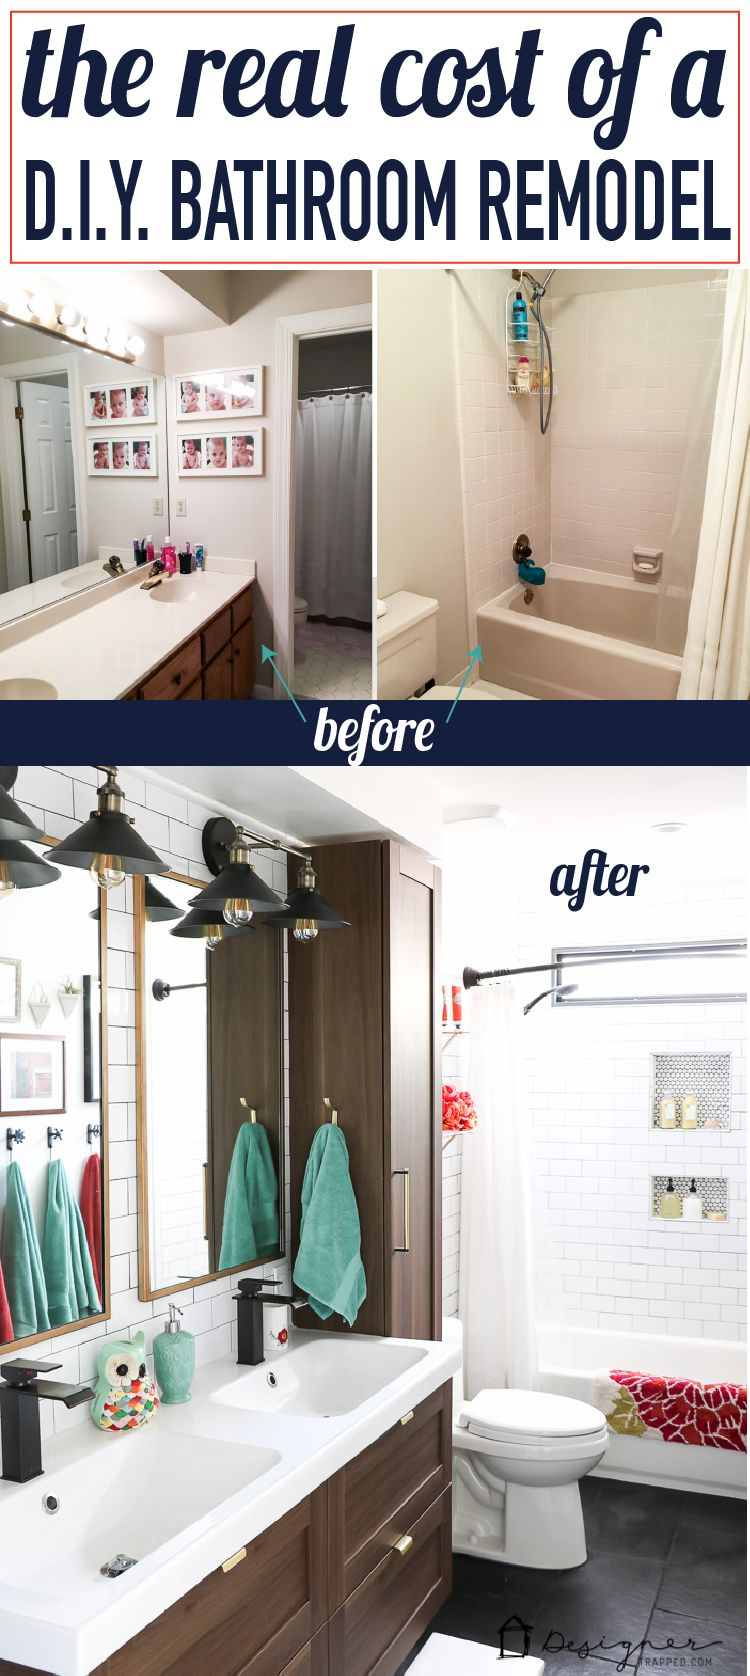 Diy Bathroom Remodel Reveal With Images Bathroom Renovation